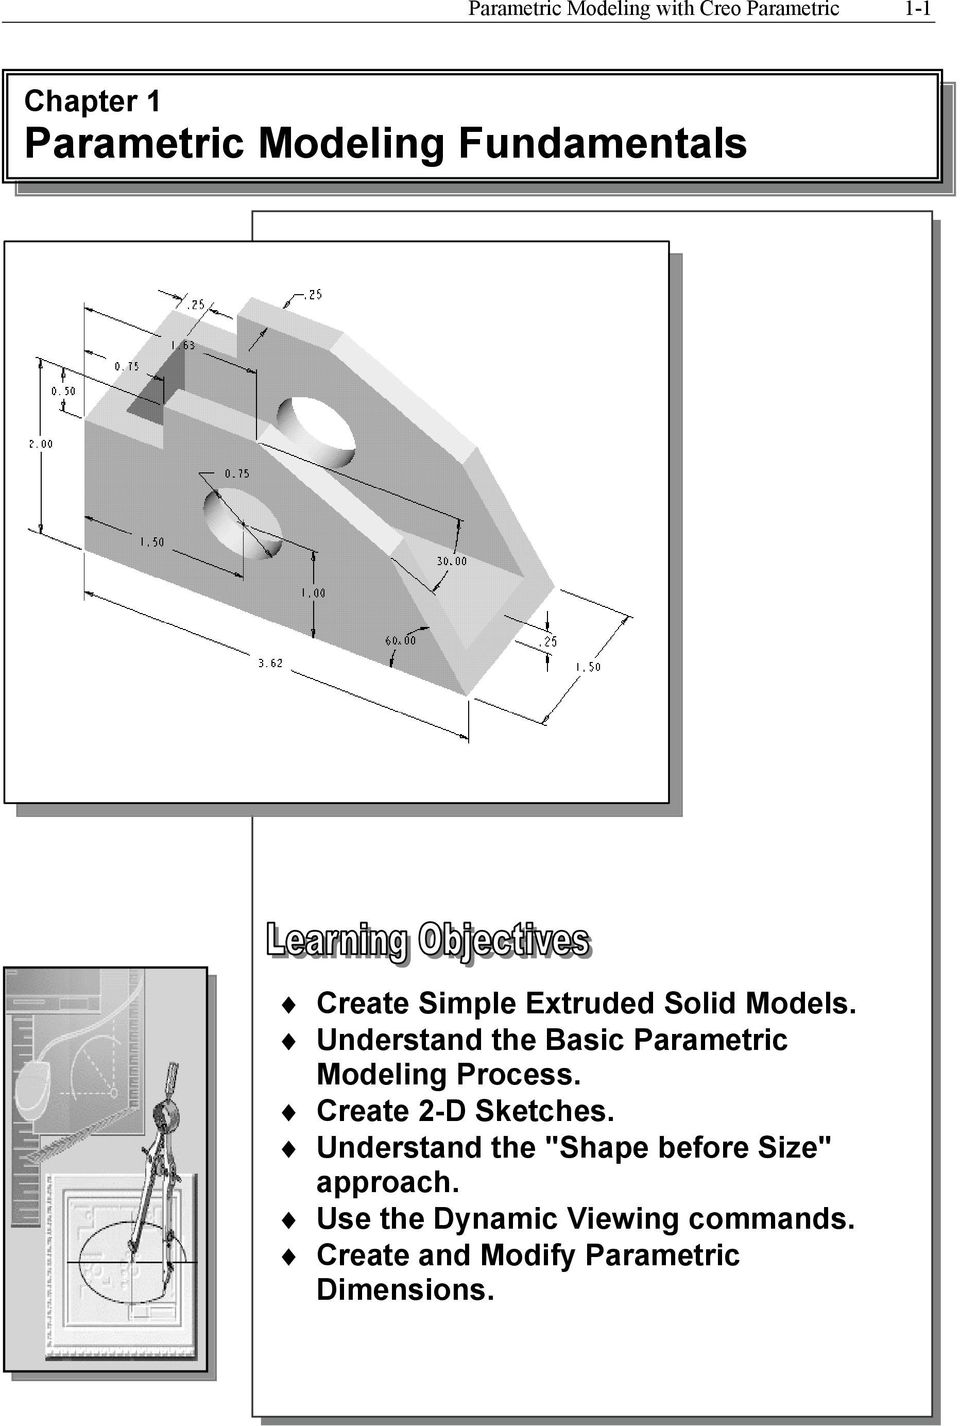 Understand the Basic Parametric Modeling Process. Create 2-D Sketches.